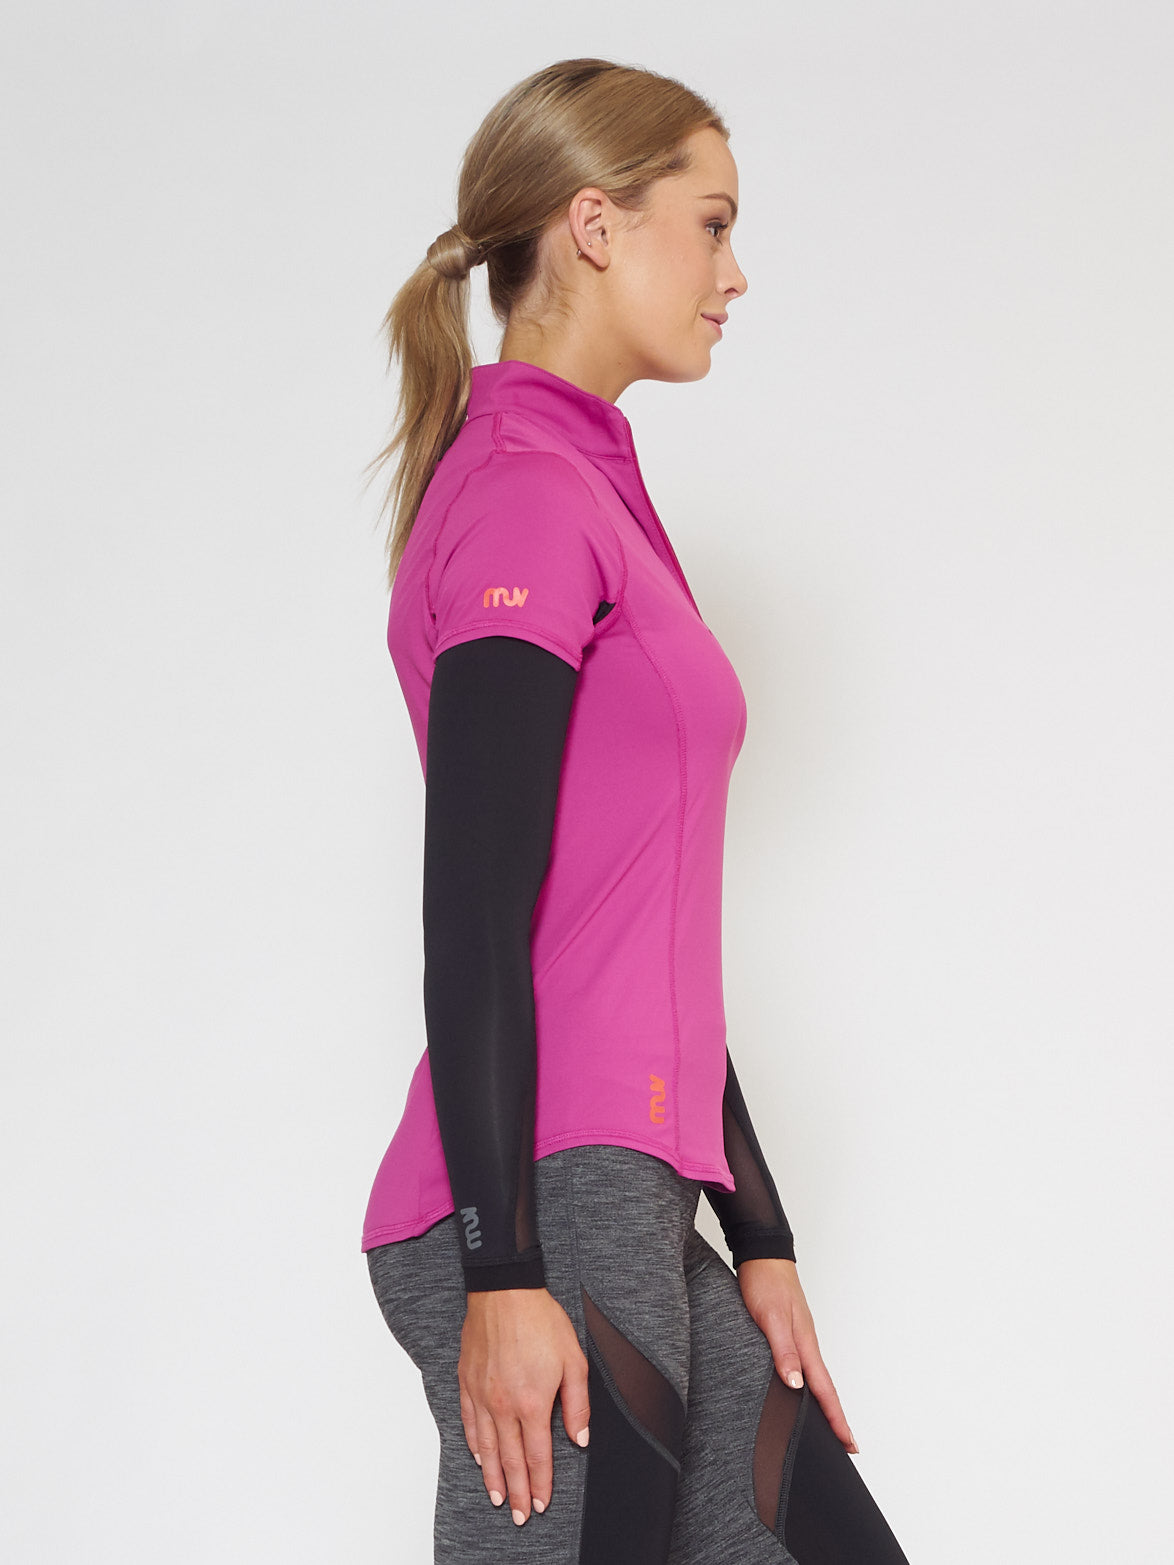 MUV Sportswear_FLARE MUV Tube Sleeve with Mesh_Colour Black_UV Protecting Sportswear